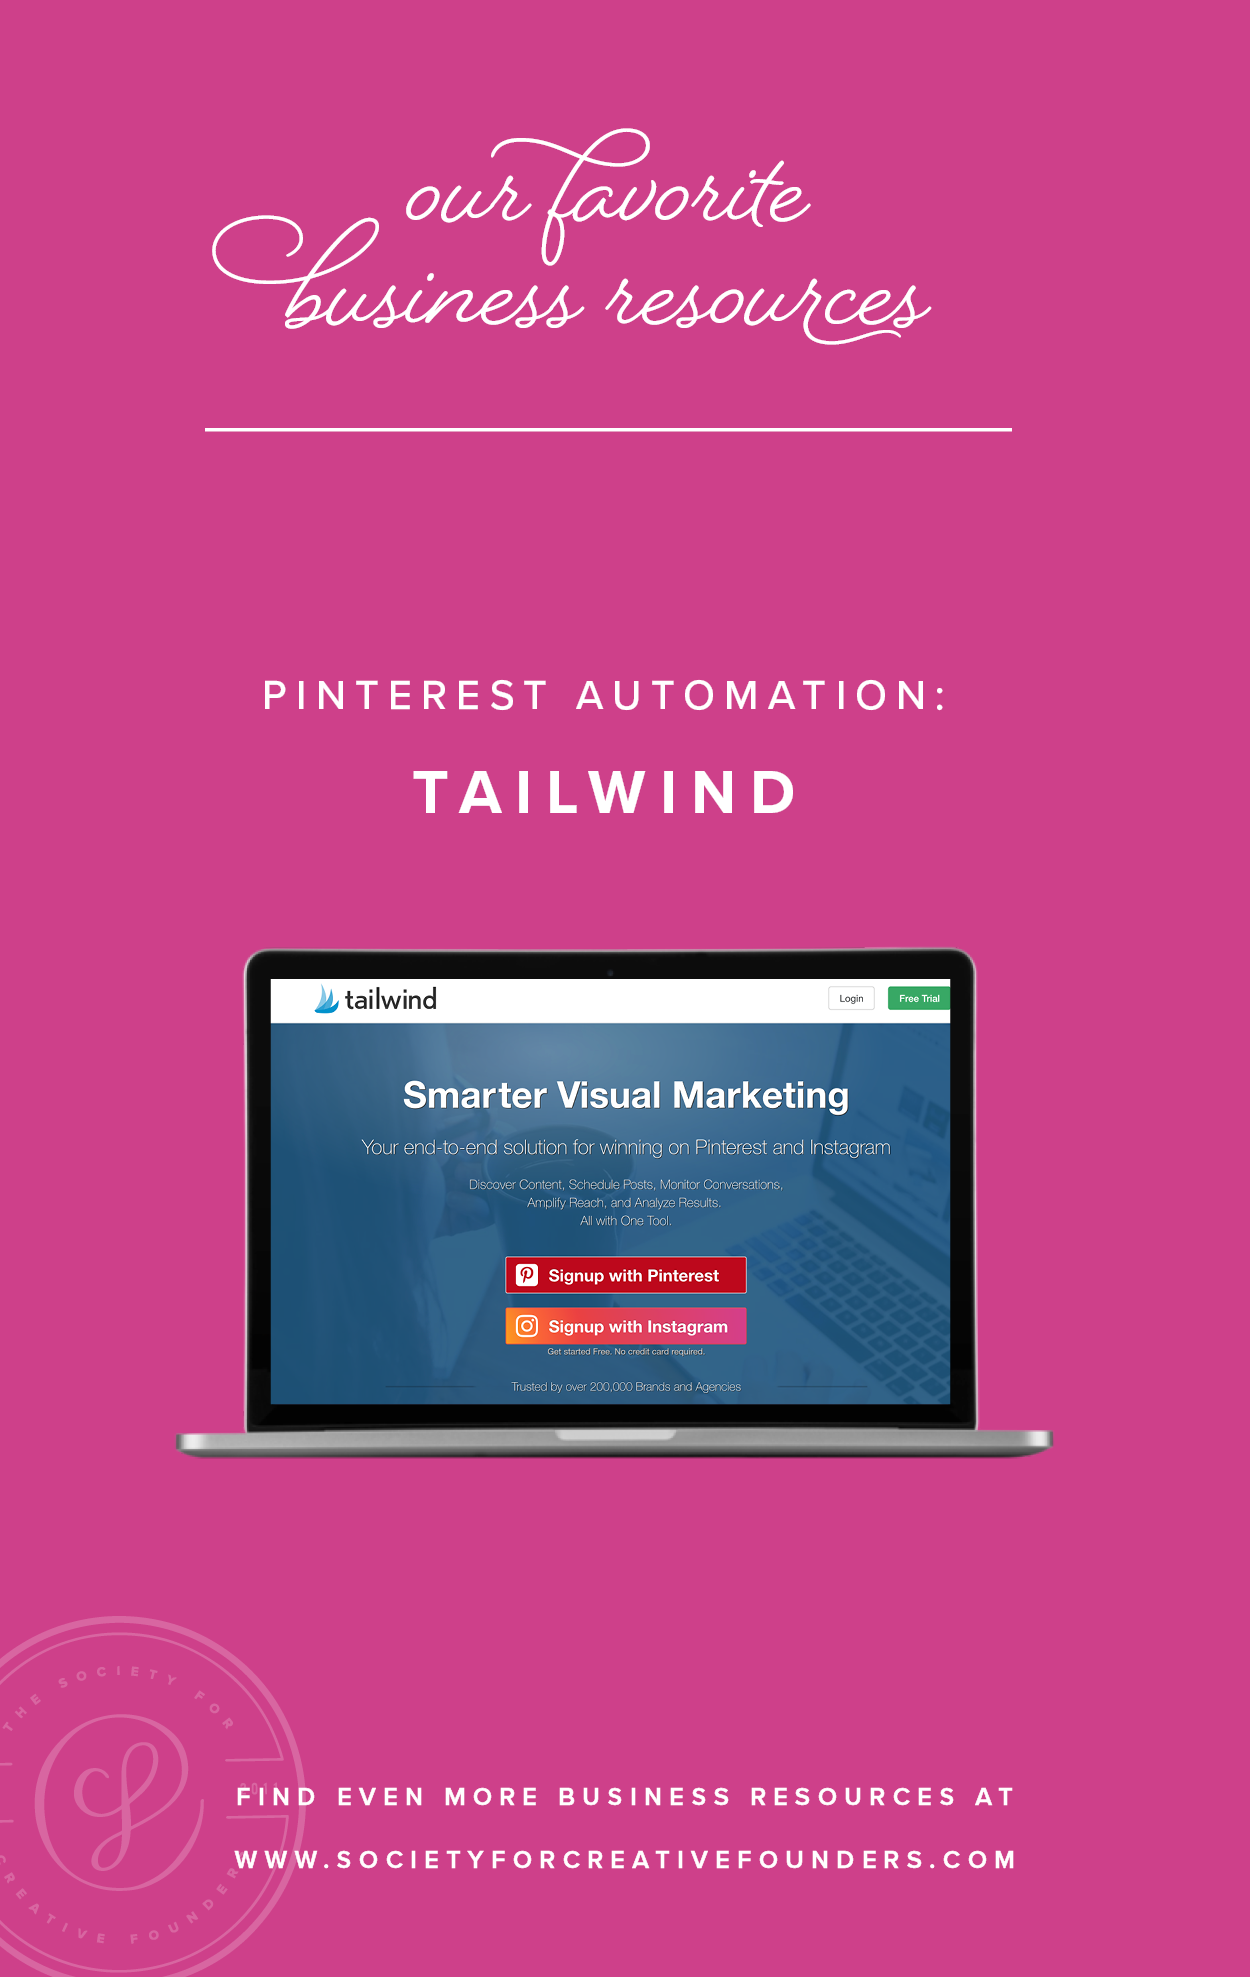 Pinterest Automation with Tailwind - Favorite Business Resources from Society for Creative Founders